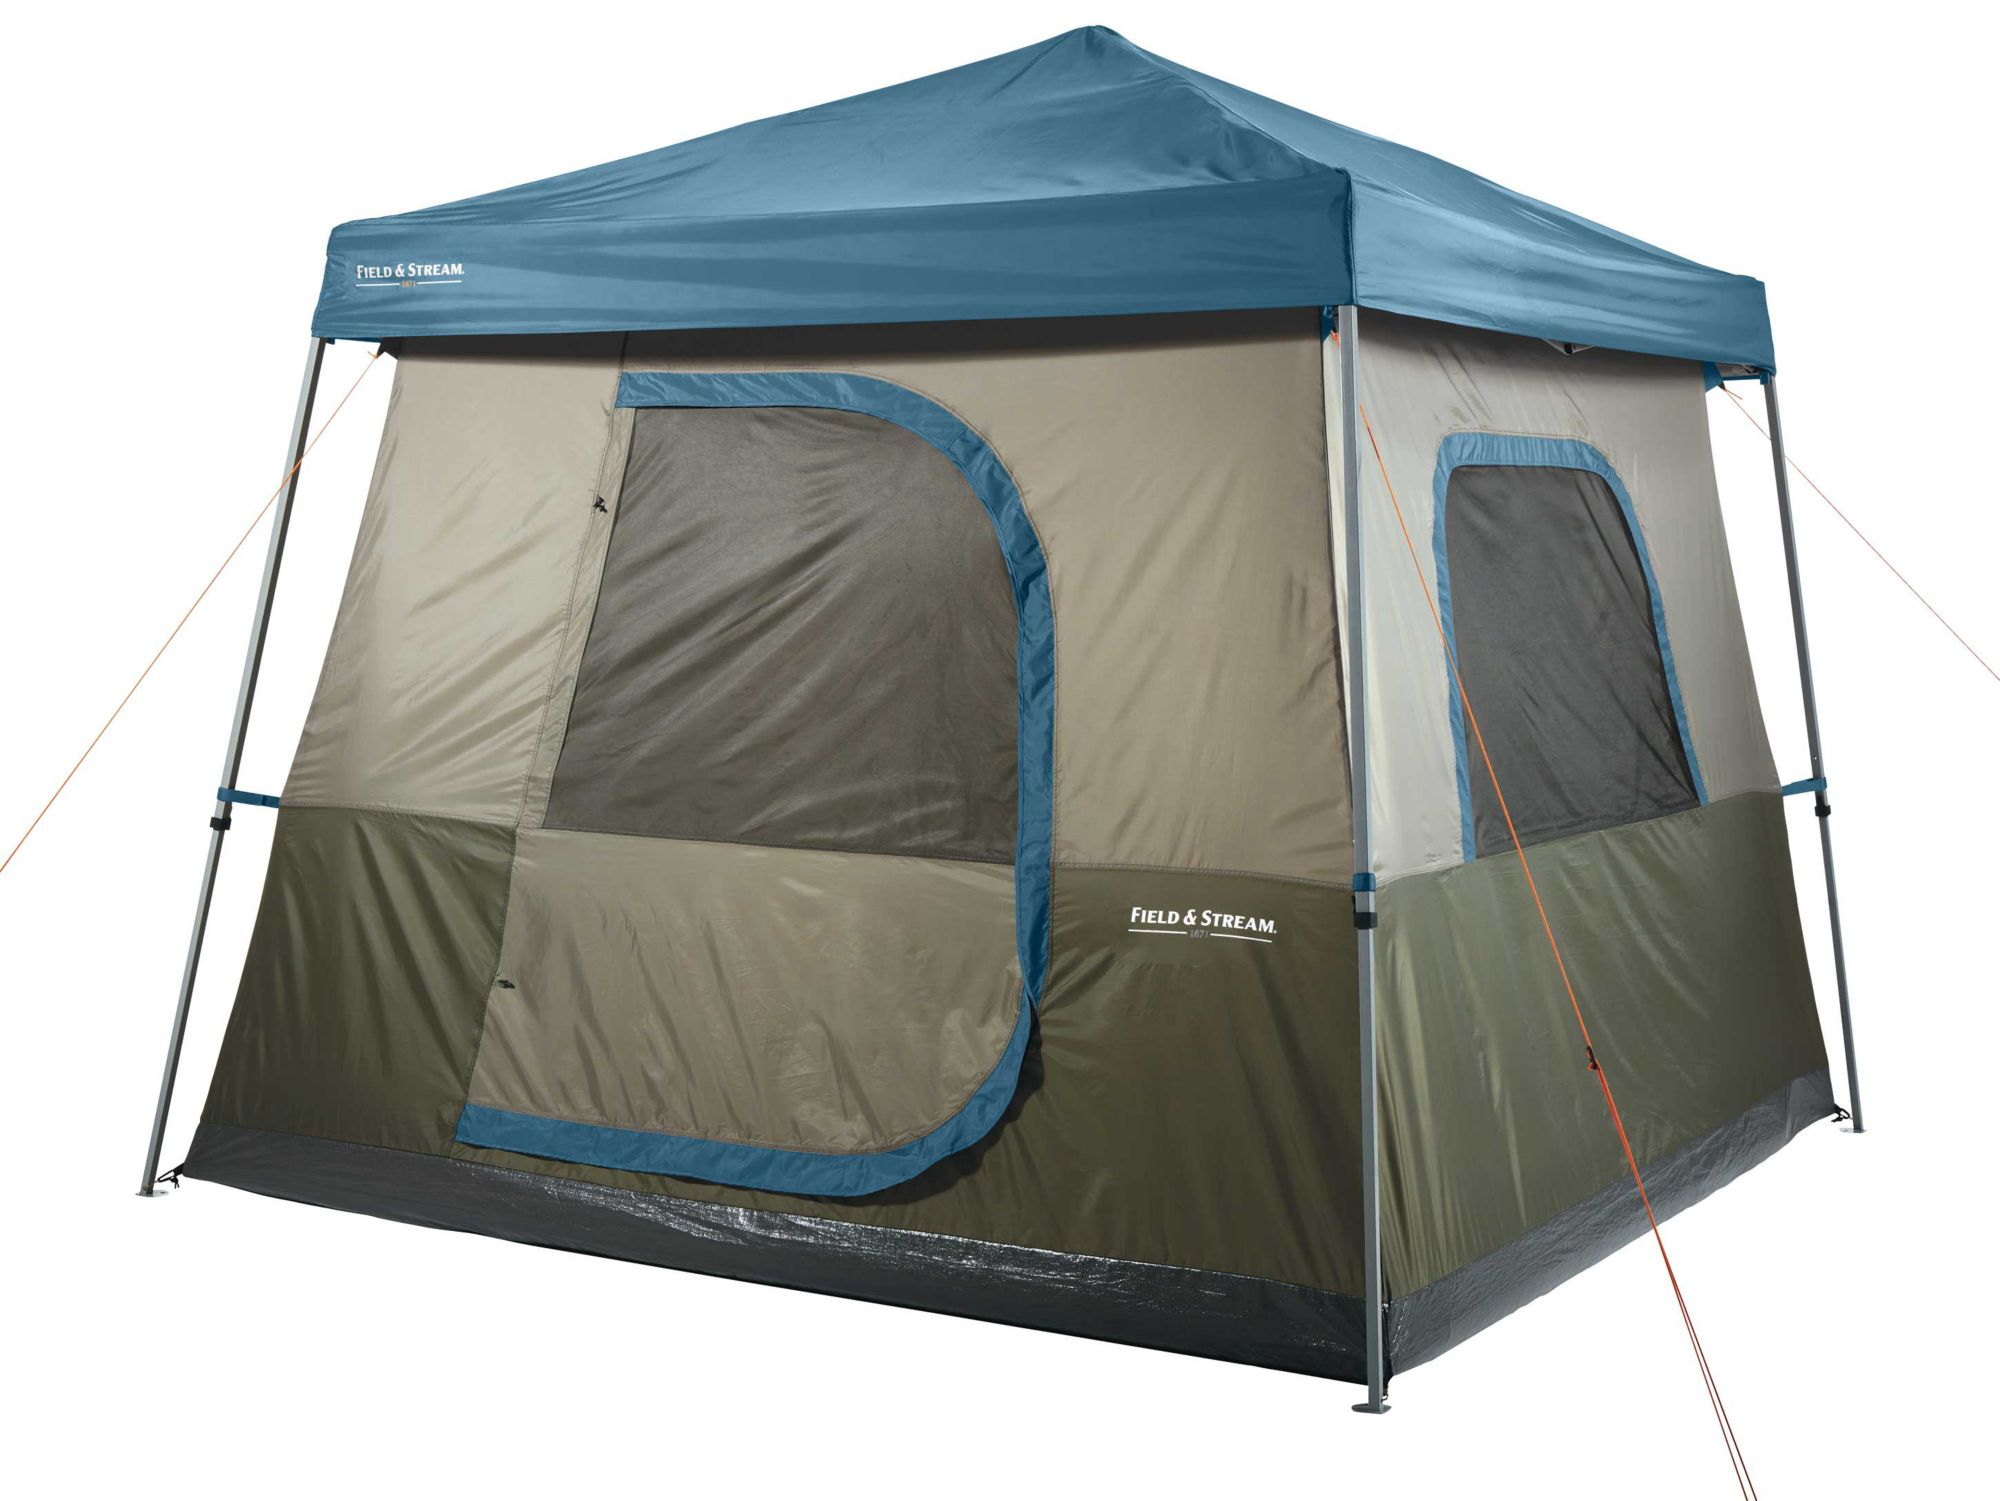 Product Image Field u0026 Stream 5 Person Canopy Tent  sc 1 st  DICKu0027S Sporting Goods & Tents for Sale | Best Price Guarantee at DICKu0027S